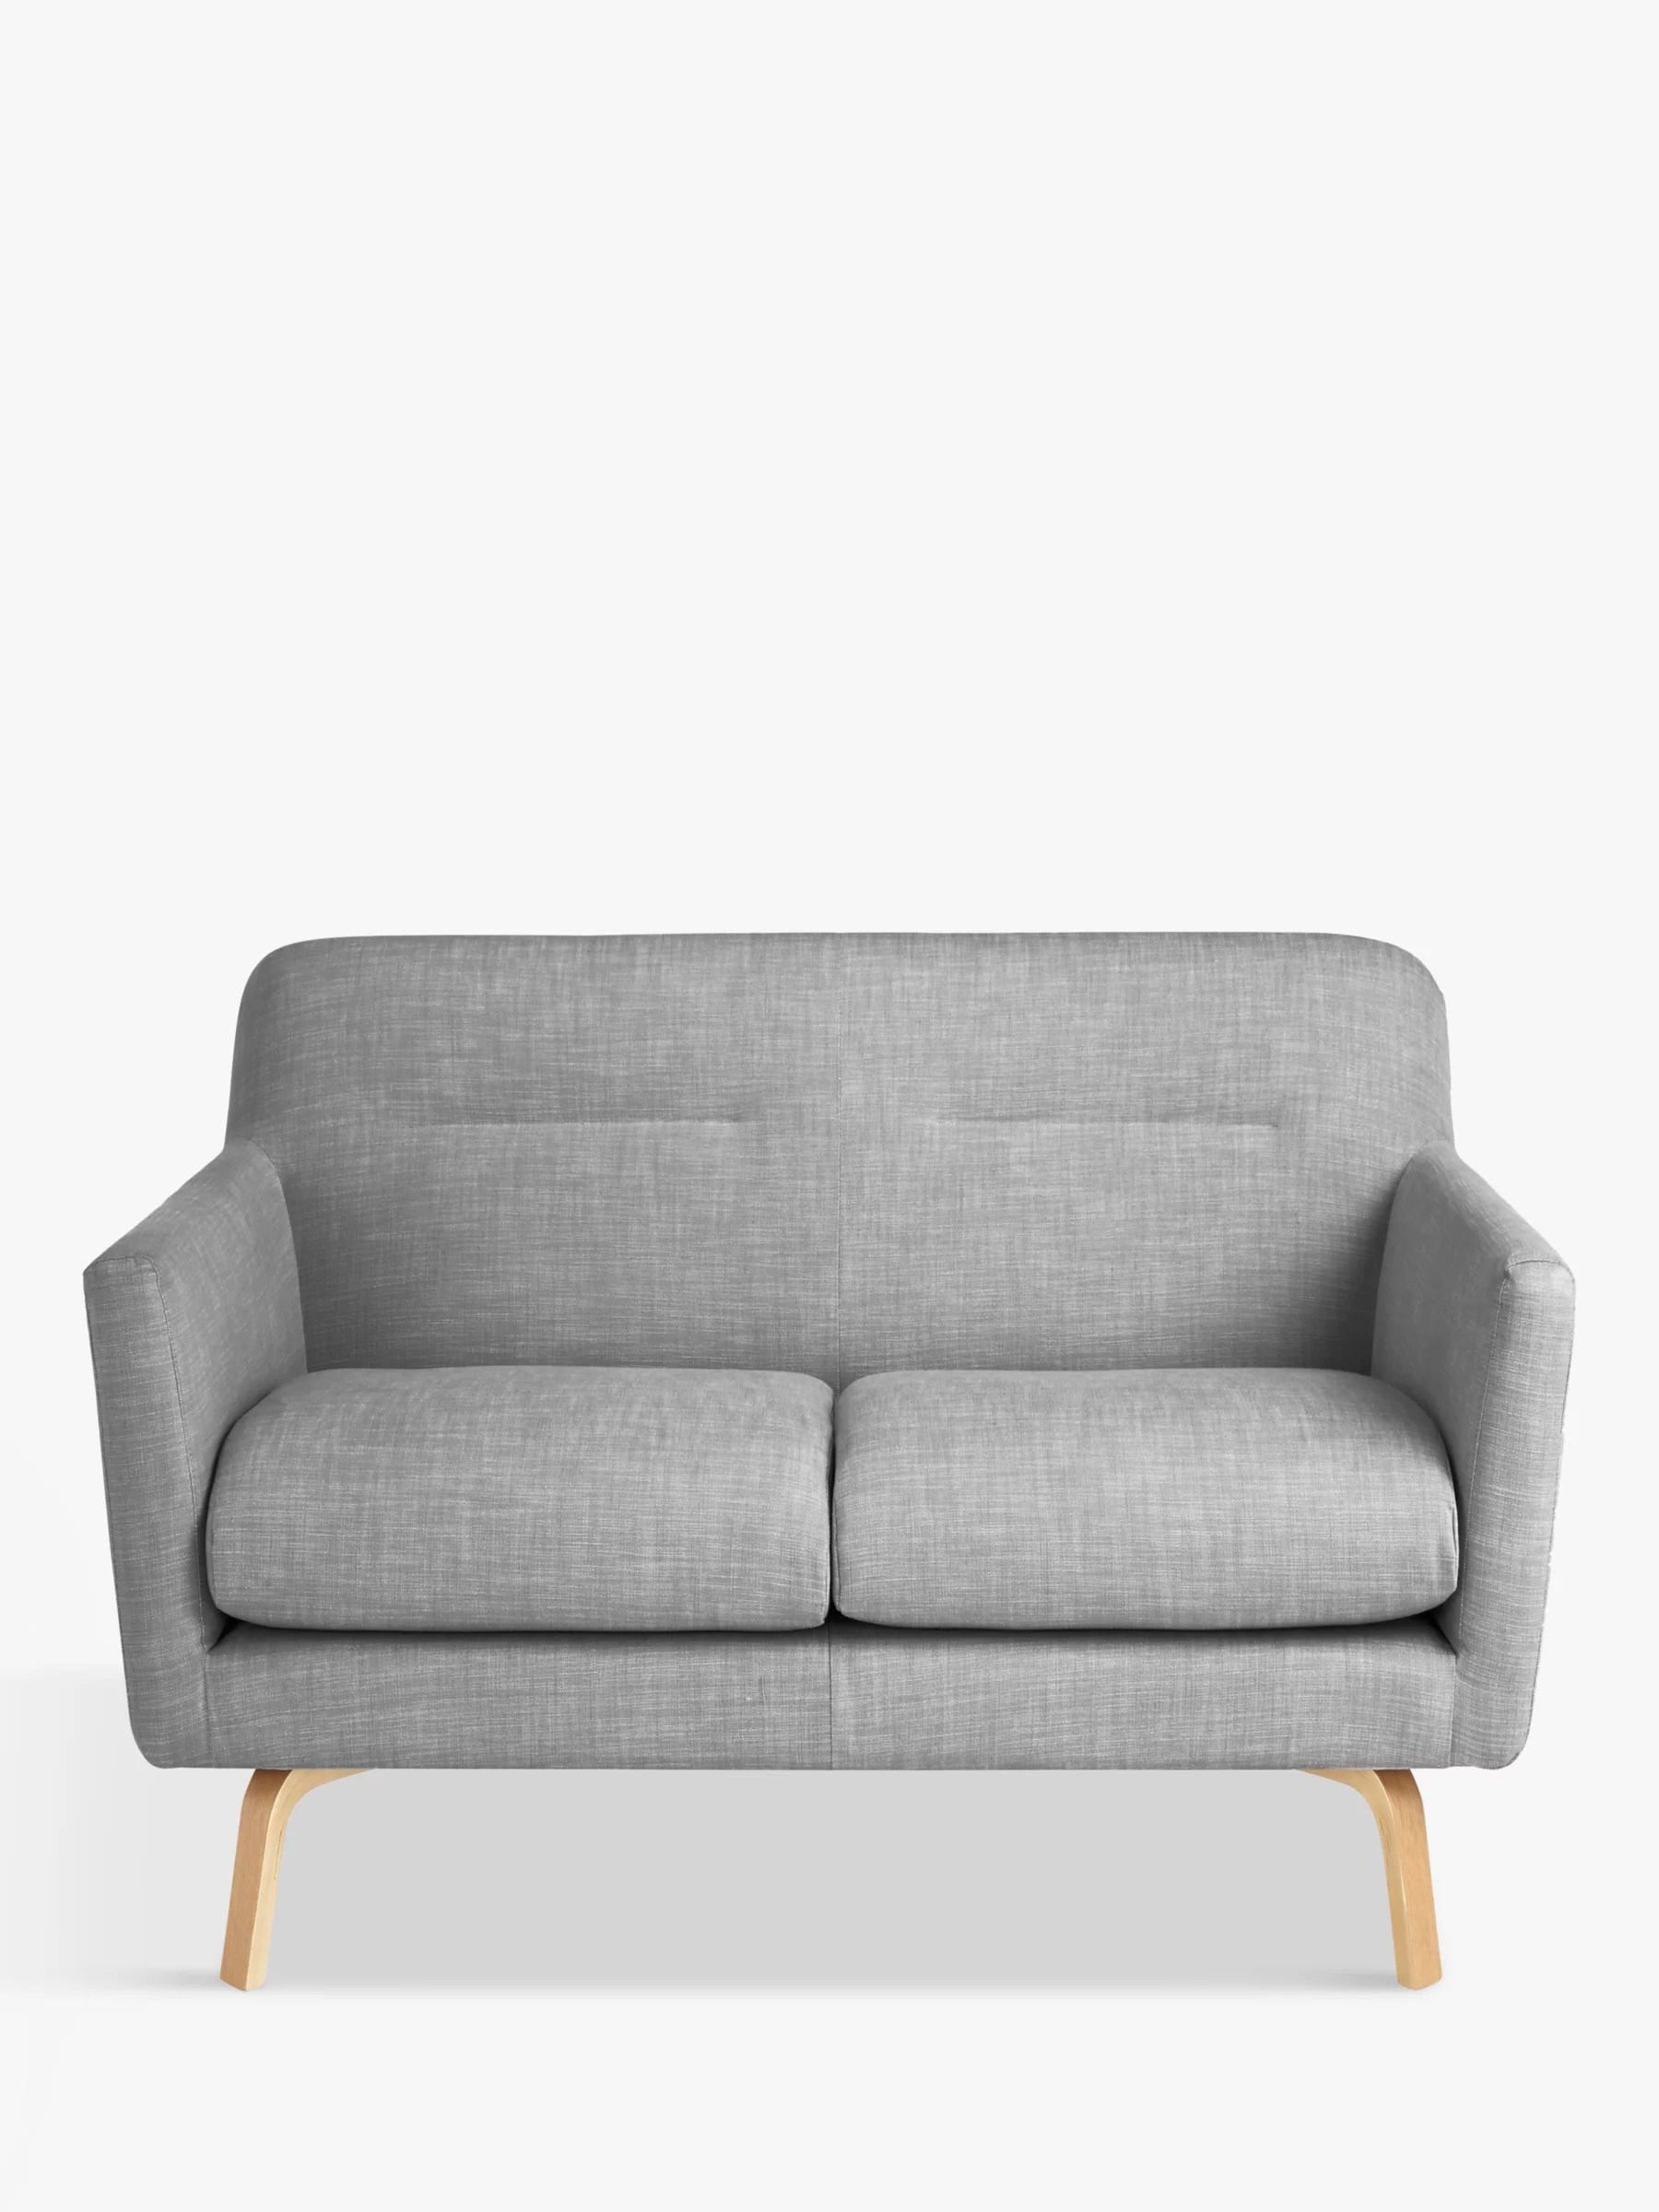 small 2 seater sofa drexel reviews house by john lewis archie ii saga grey at buyhouse online johnlewis